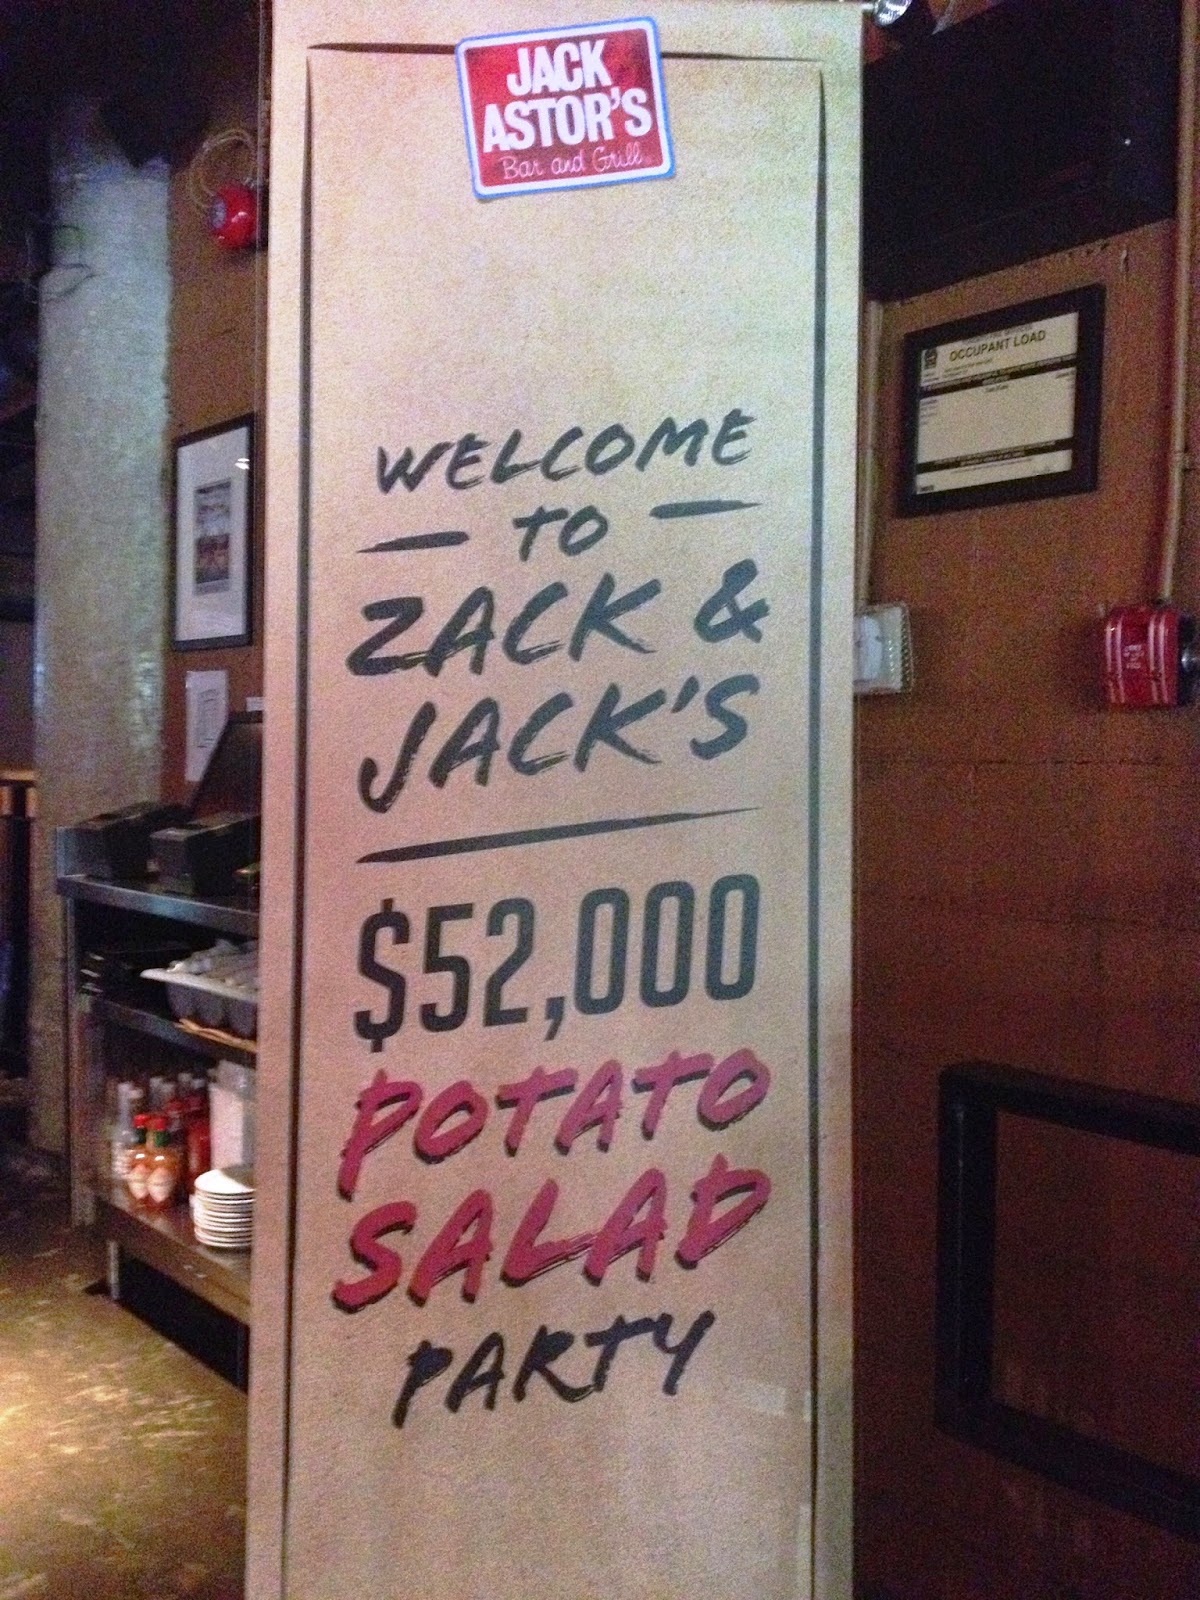 Zack & Jack's $52,000 Potato Salad Party